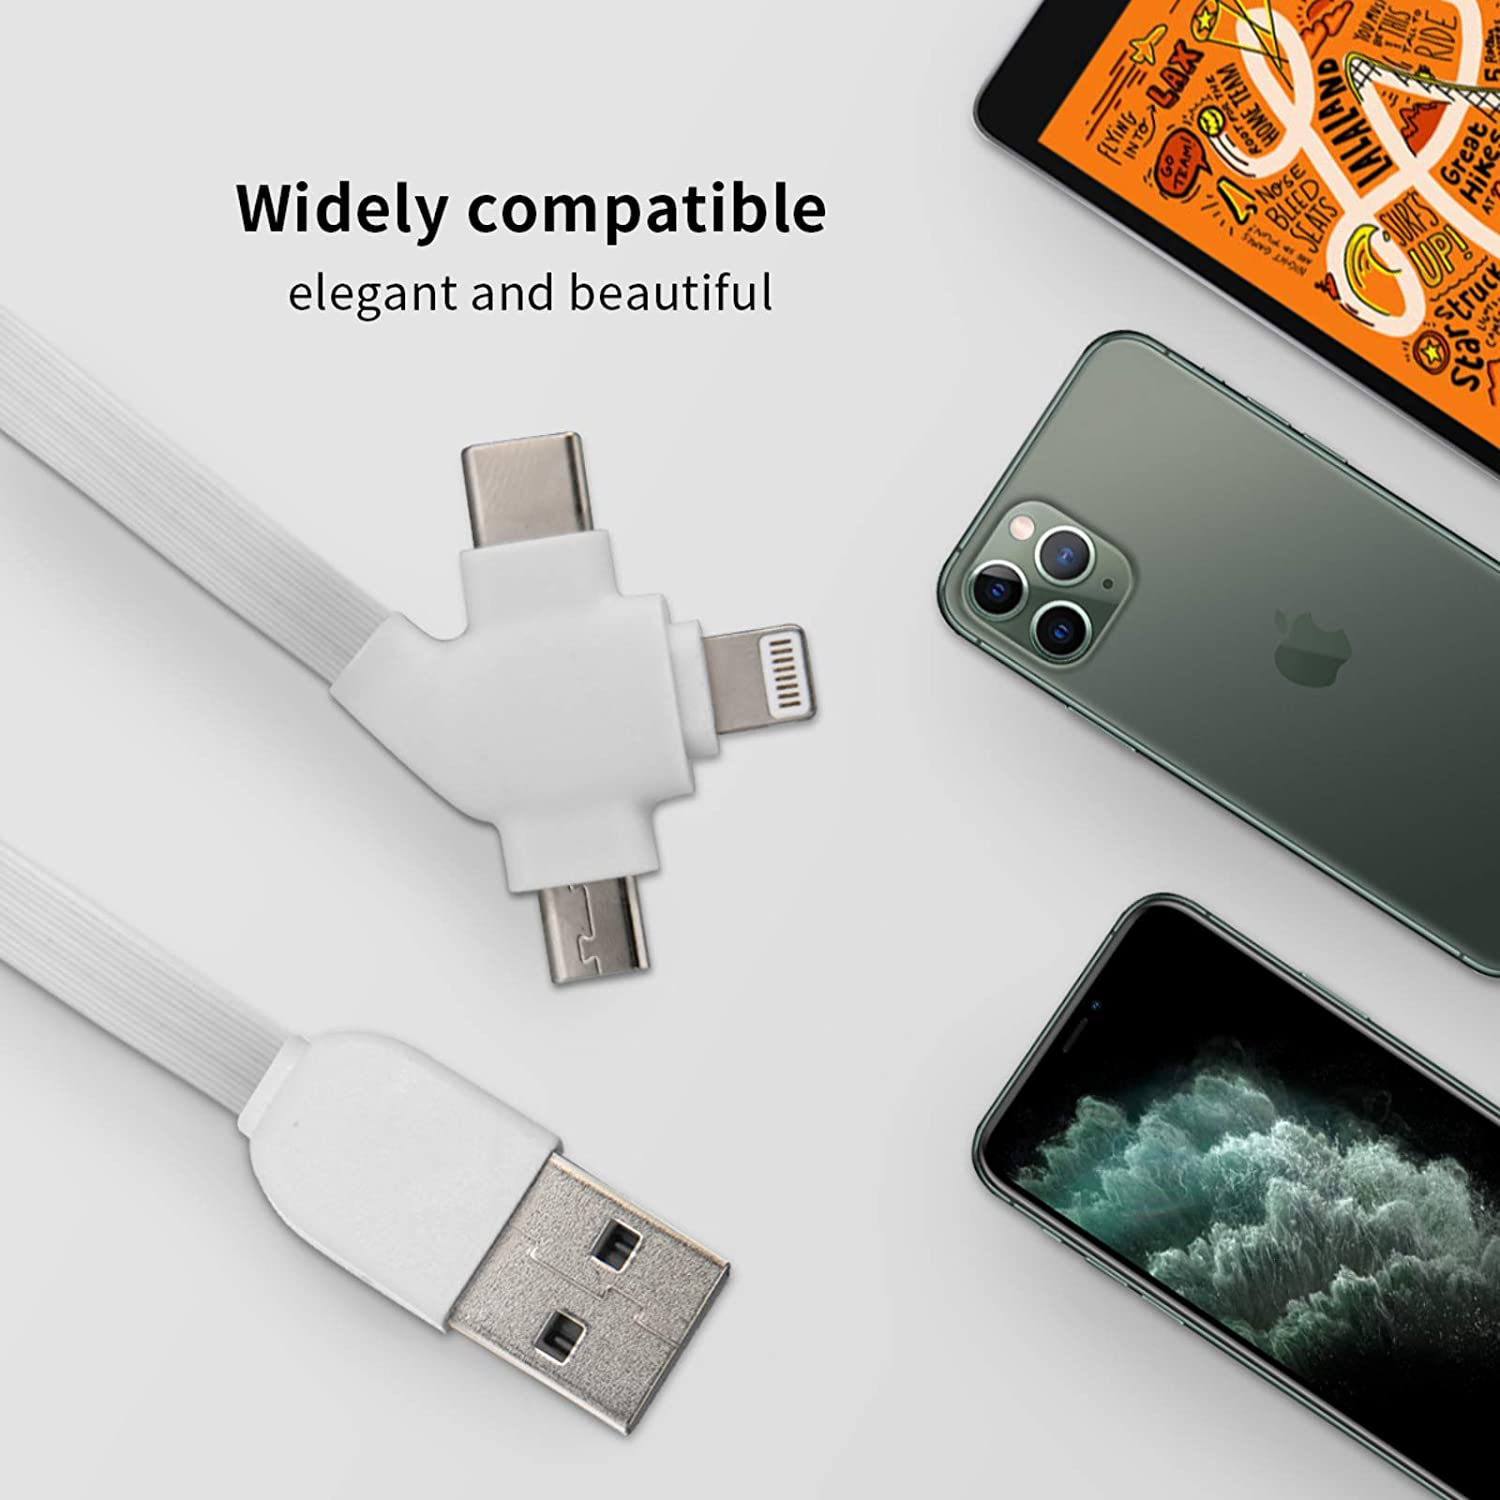 Cute Dear Trees Forestthe Square Three-in-One USB Cable is A Universal Interface Charging Cable Suitable for Various Mobile Phones and Tablets